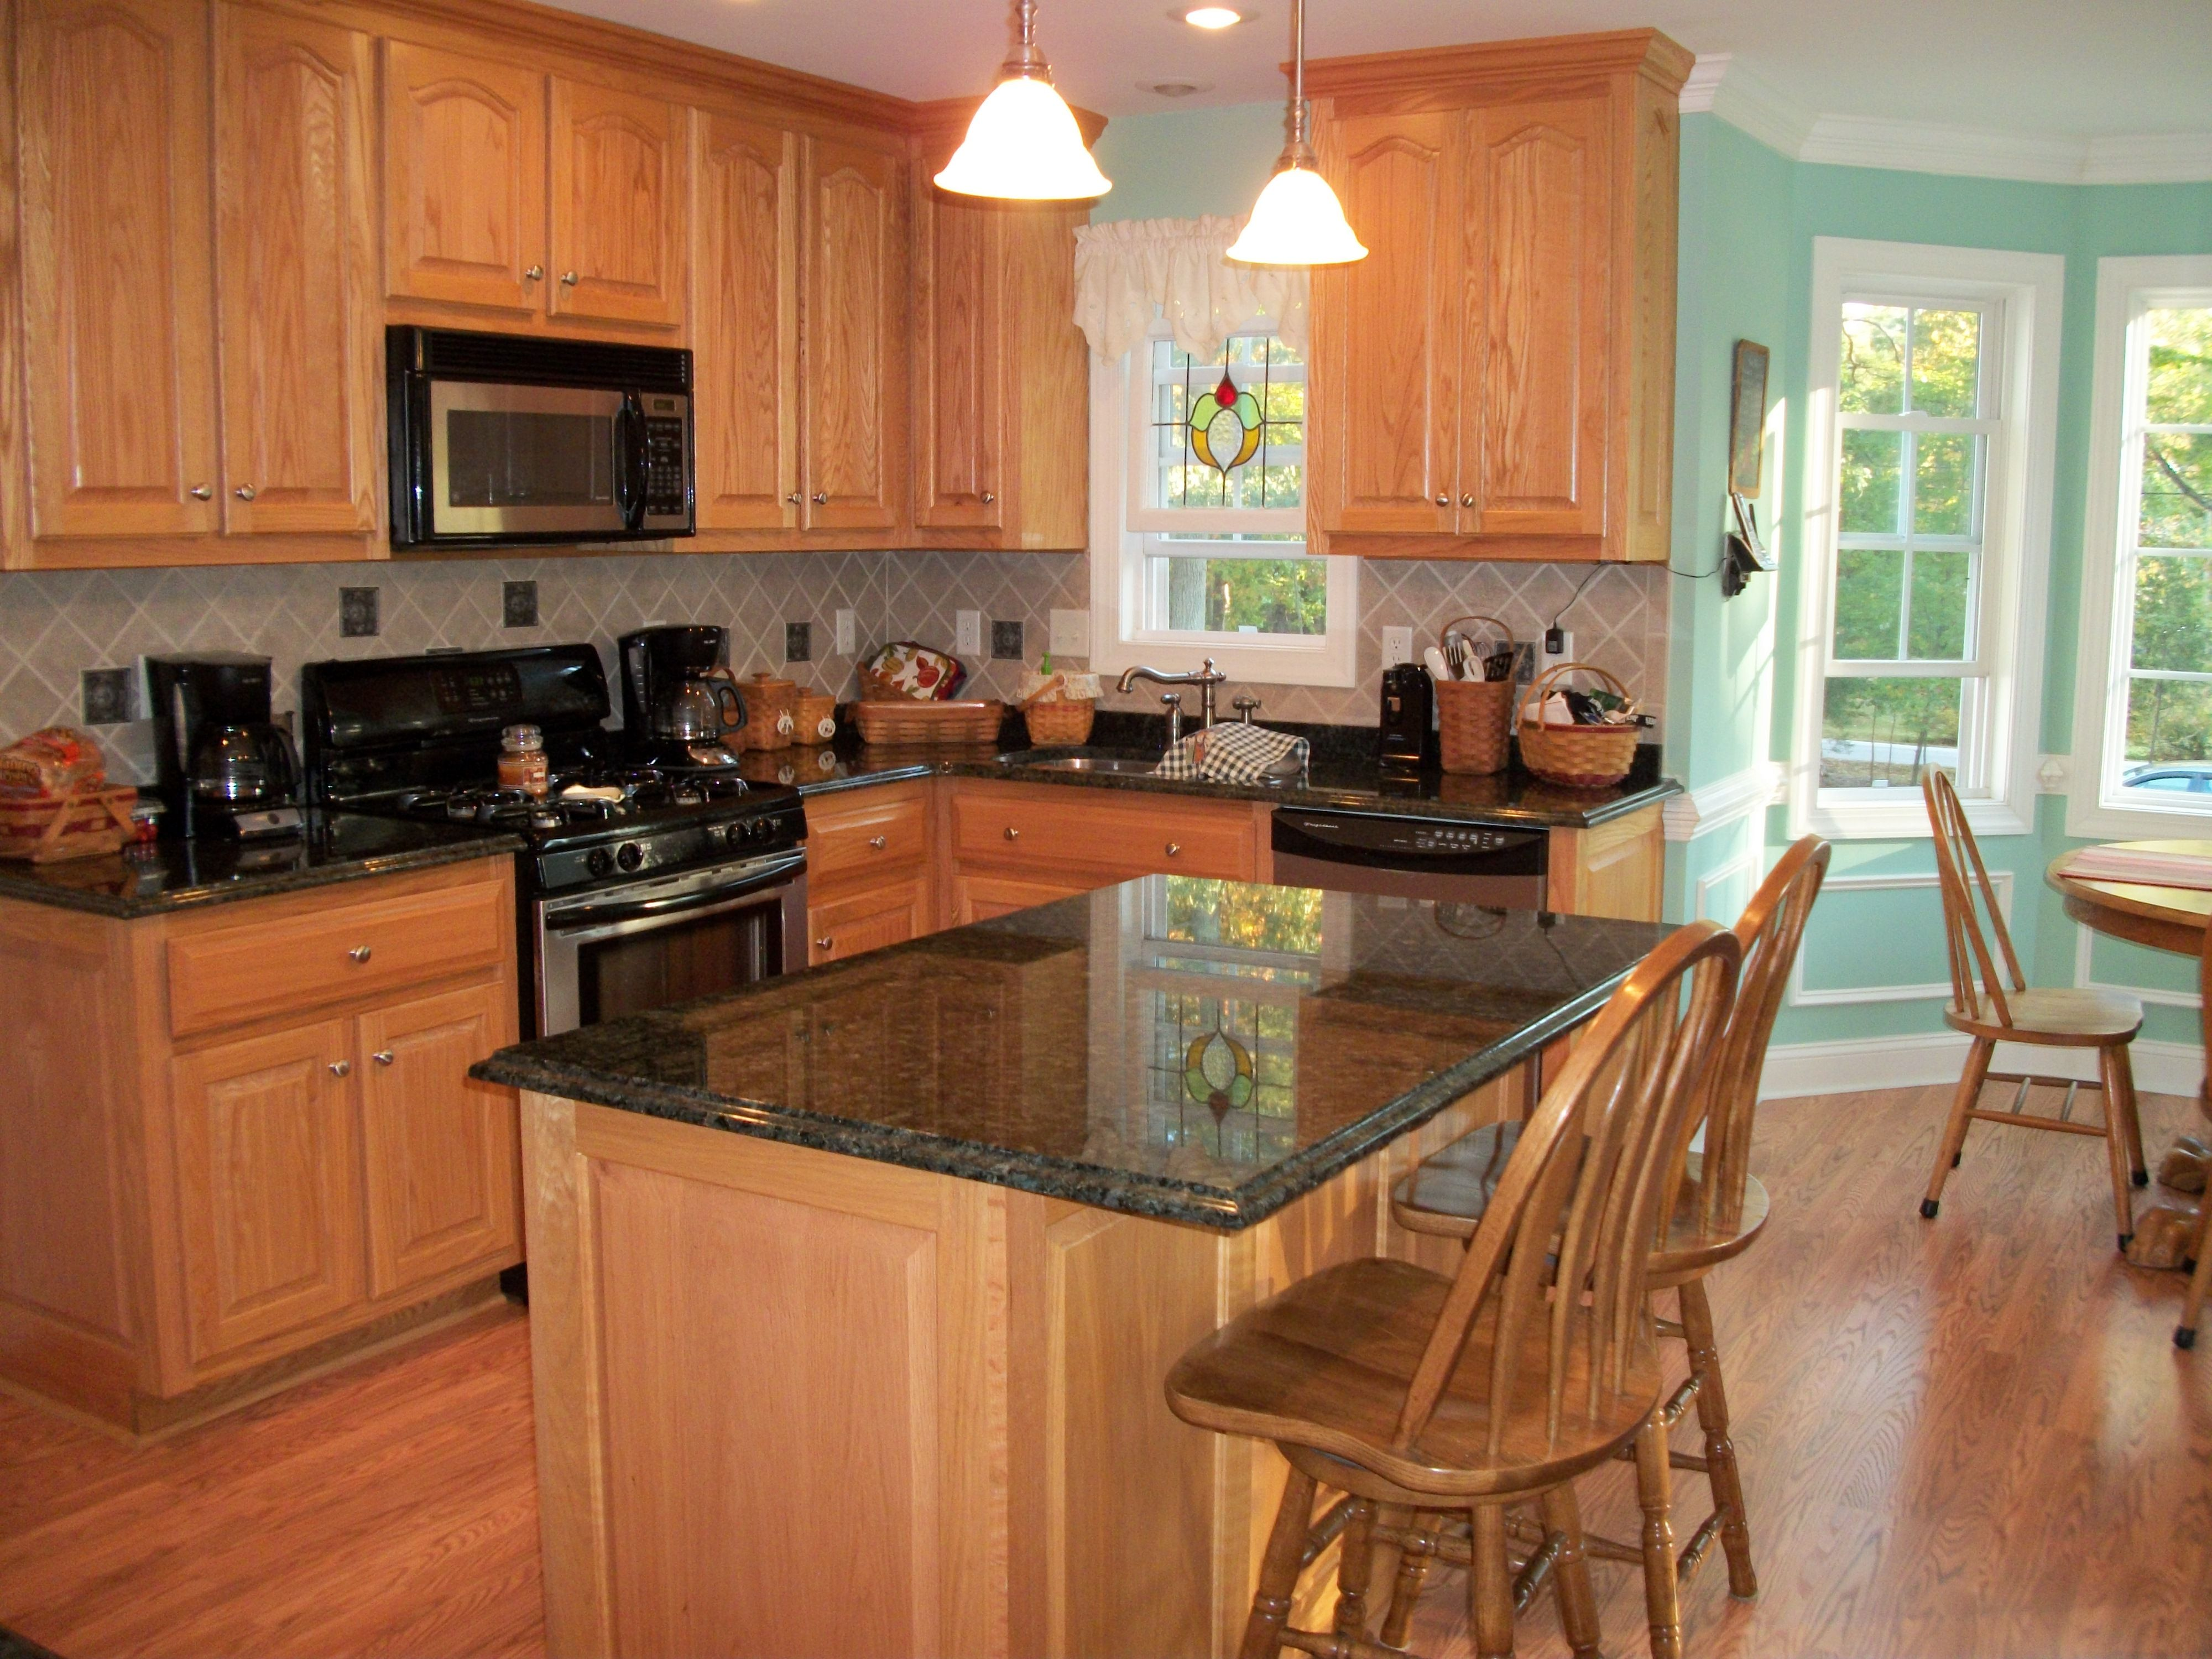 Pictures Of Countertops And Backsplashes | Beautiful Kitchen Countertops  And Backsplash « Capitol Granite